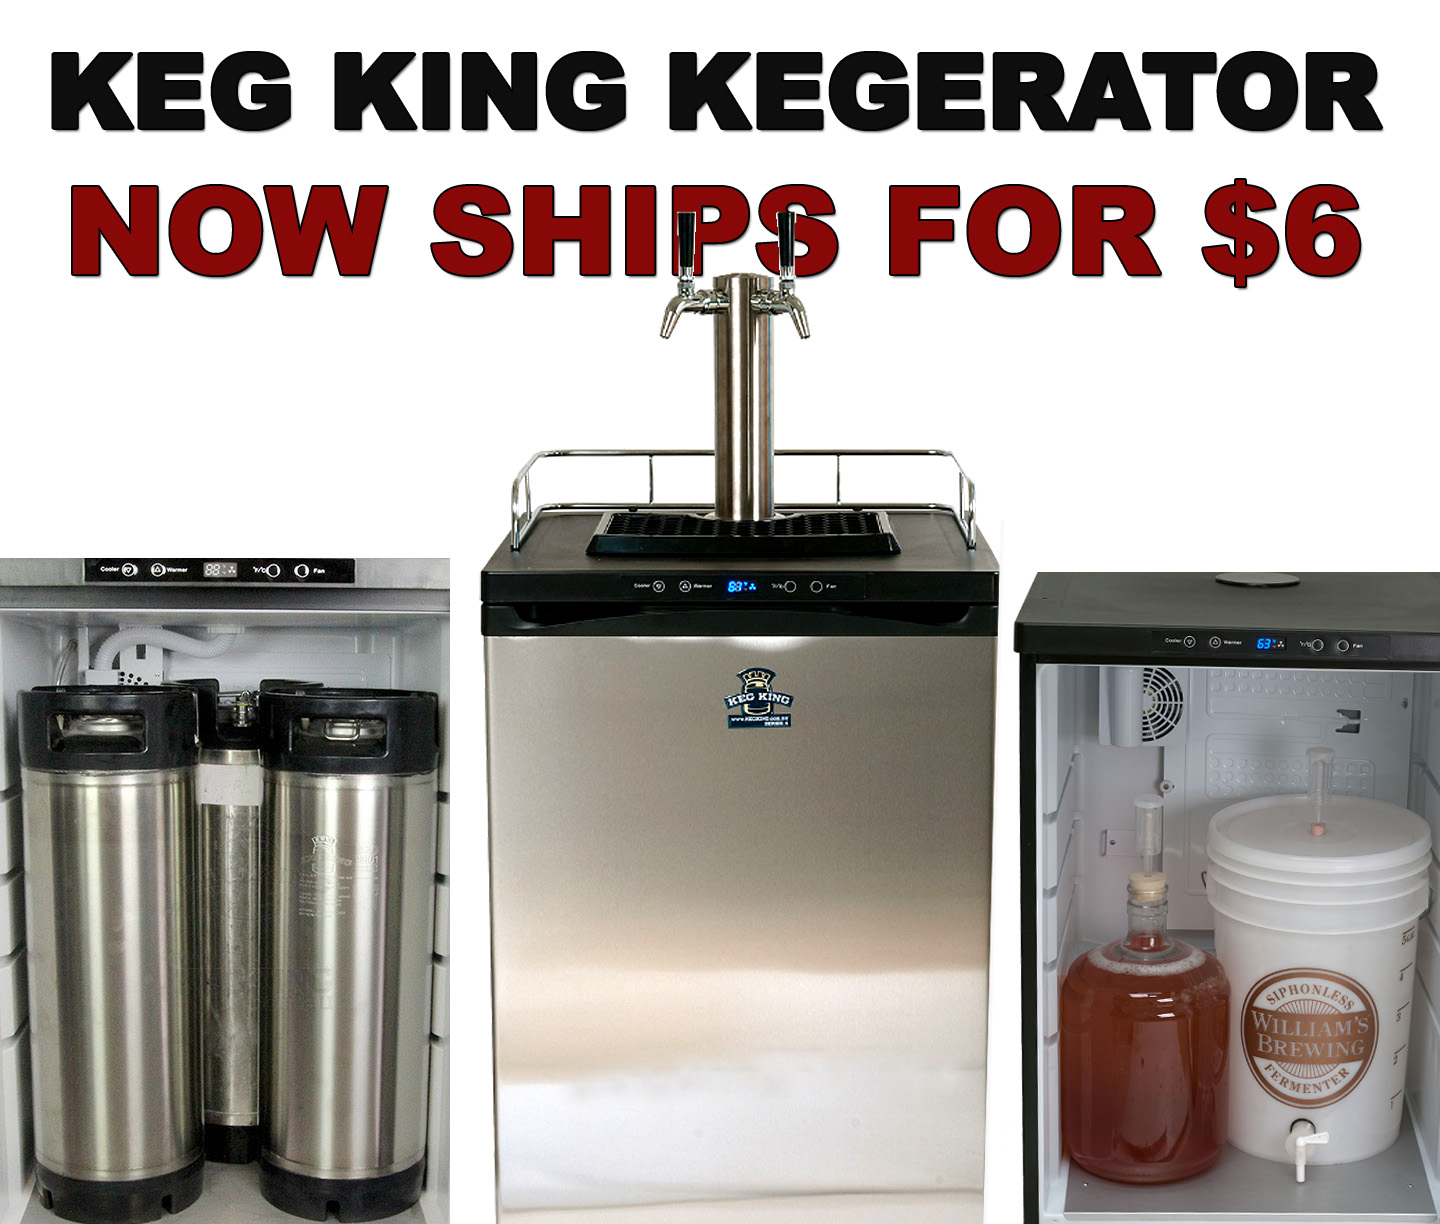 Home Brewer Promo Code for Get $6.99 Shipping On A New Keg King Kegerator Coupon Code